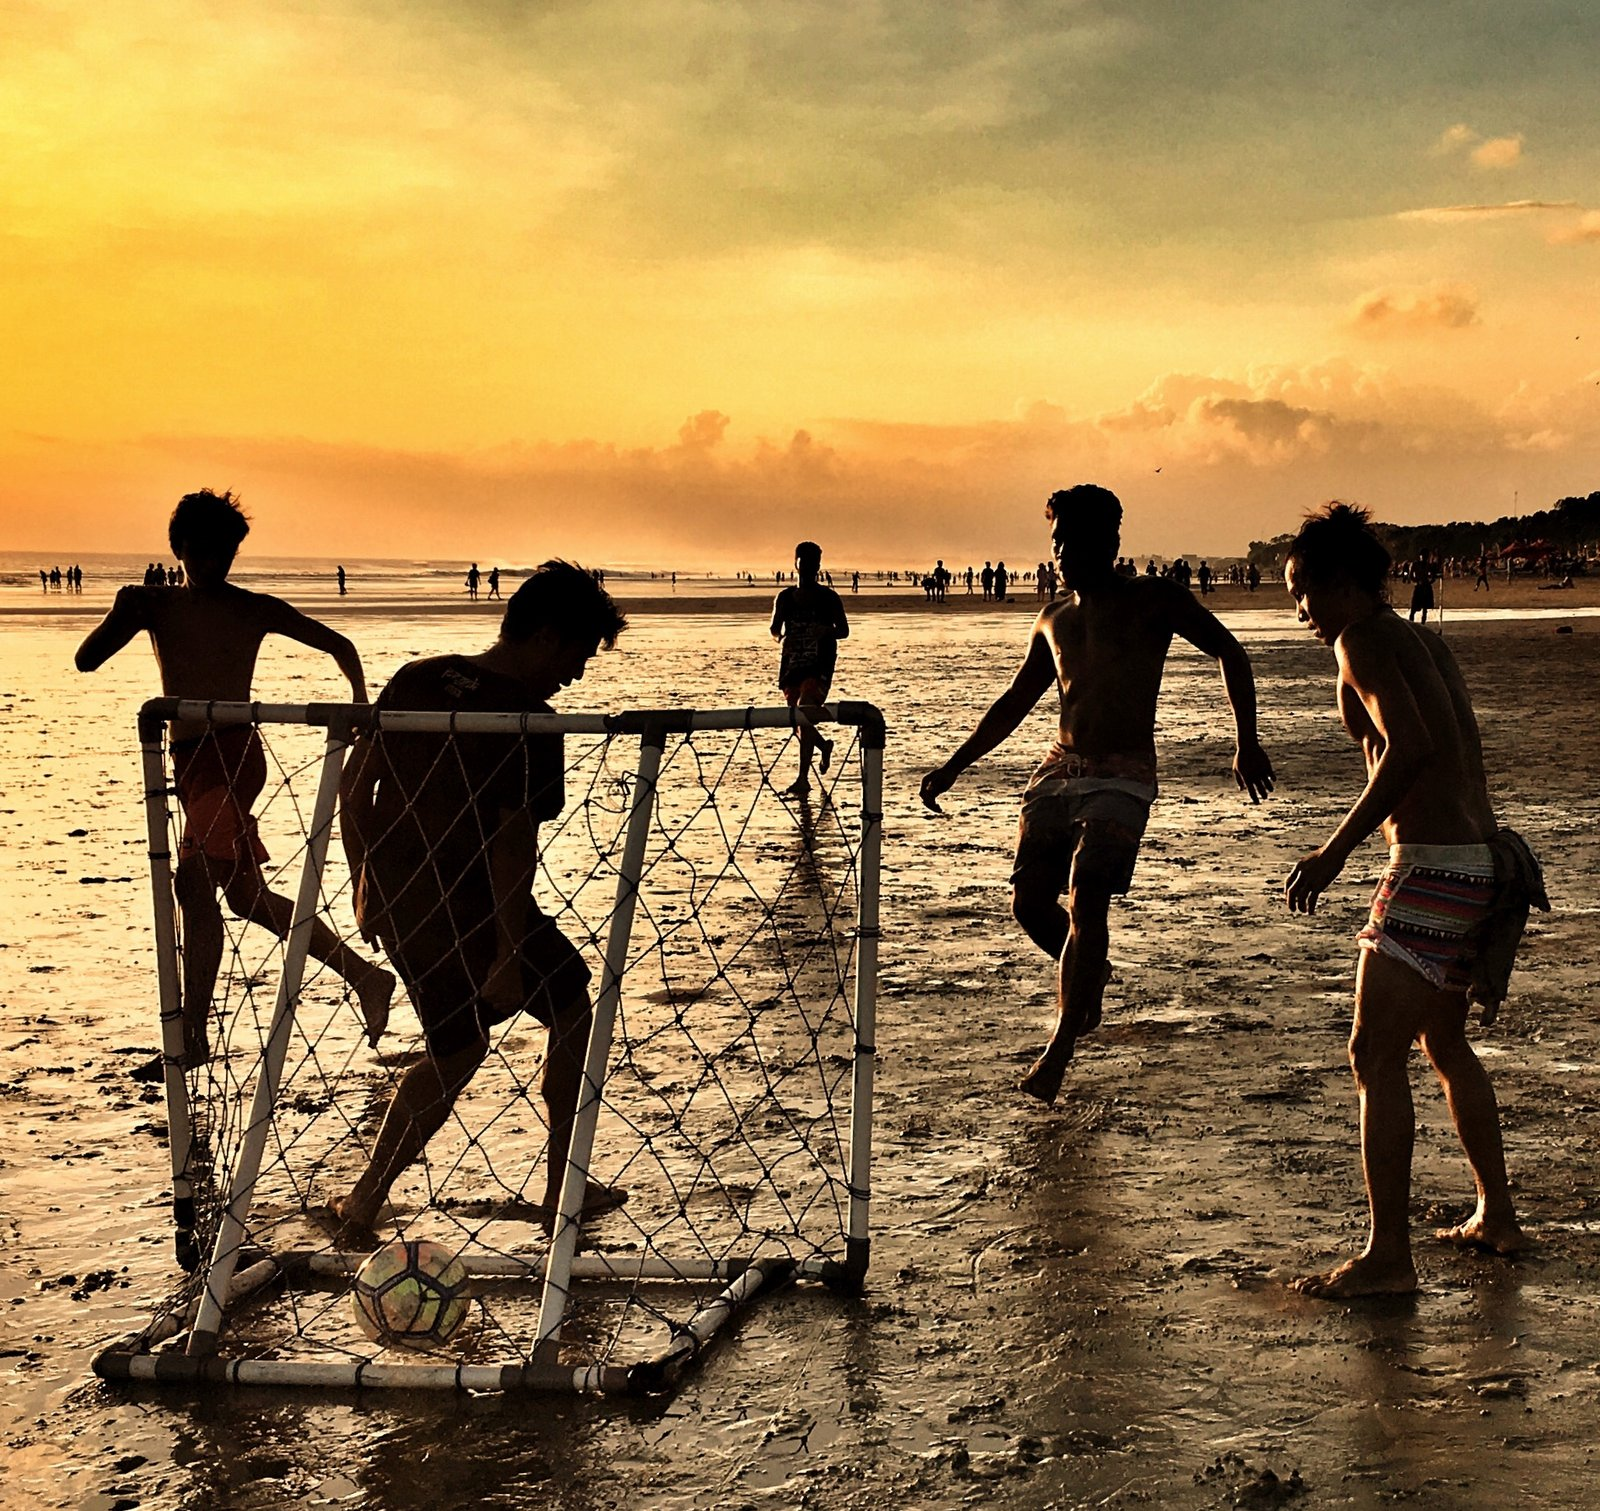 Beach football in Bali - Ali G Studios